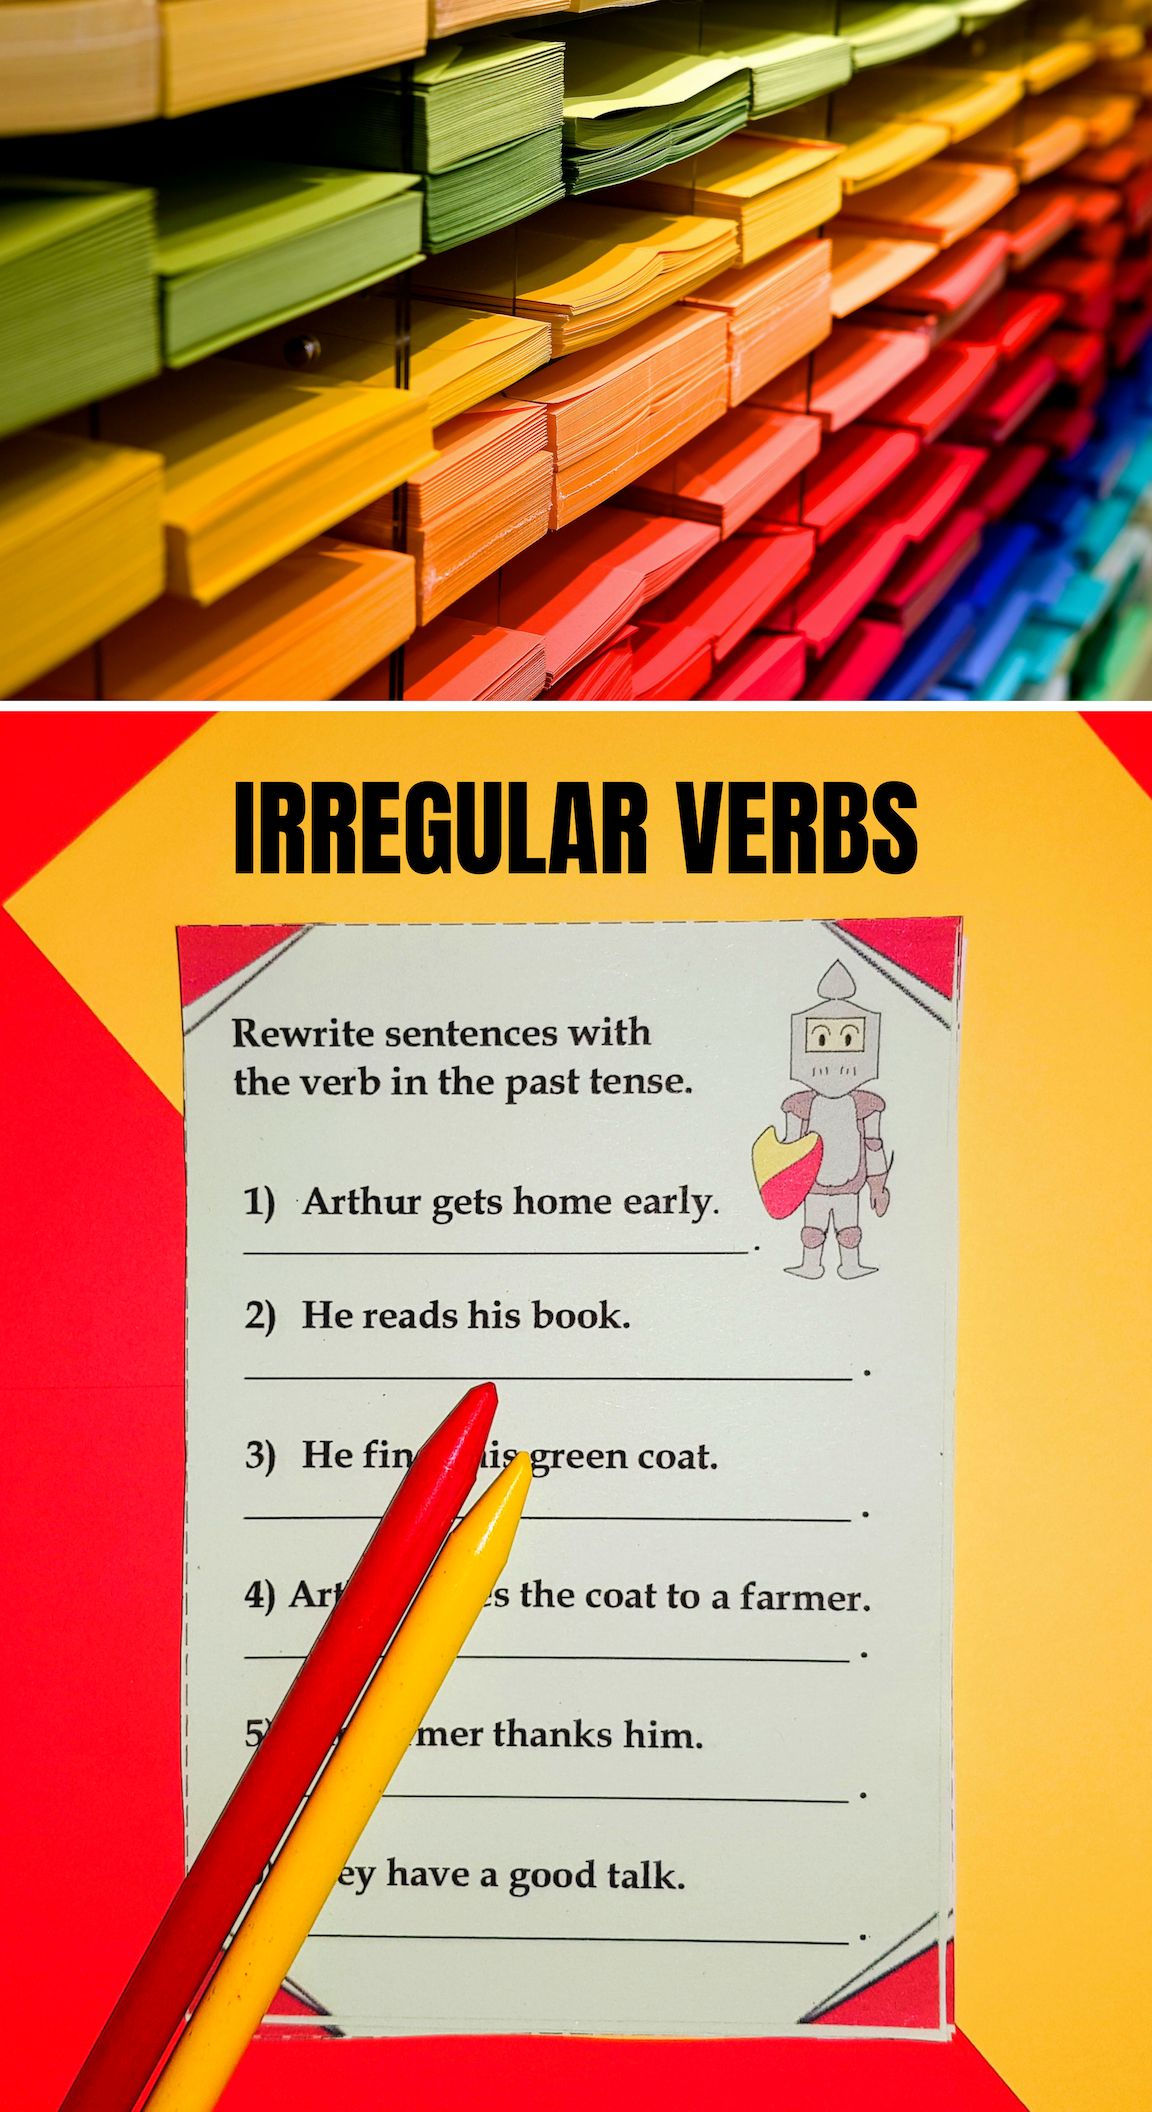 Irregular And Regular Past Tense Verbs